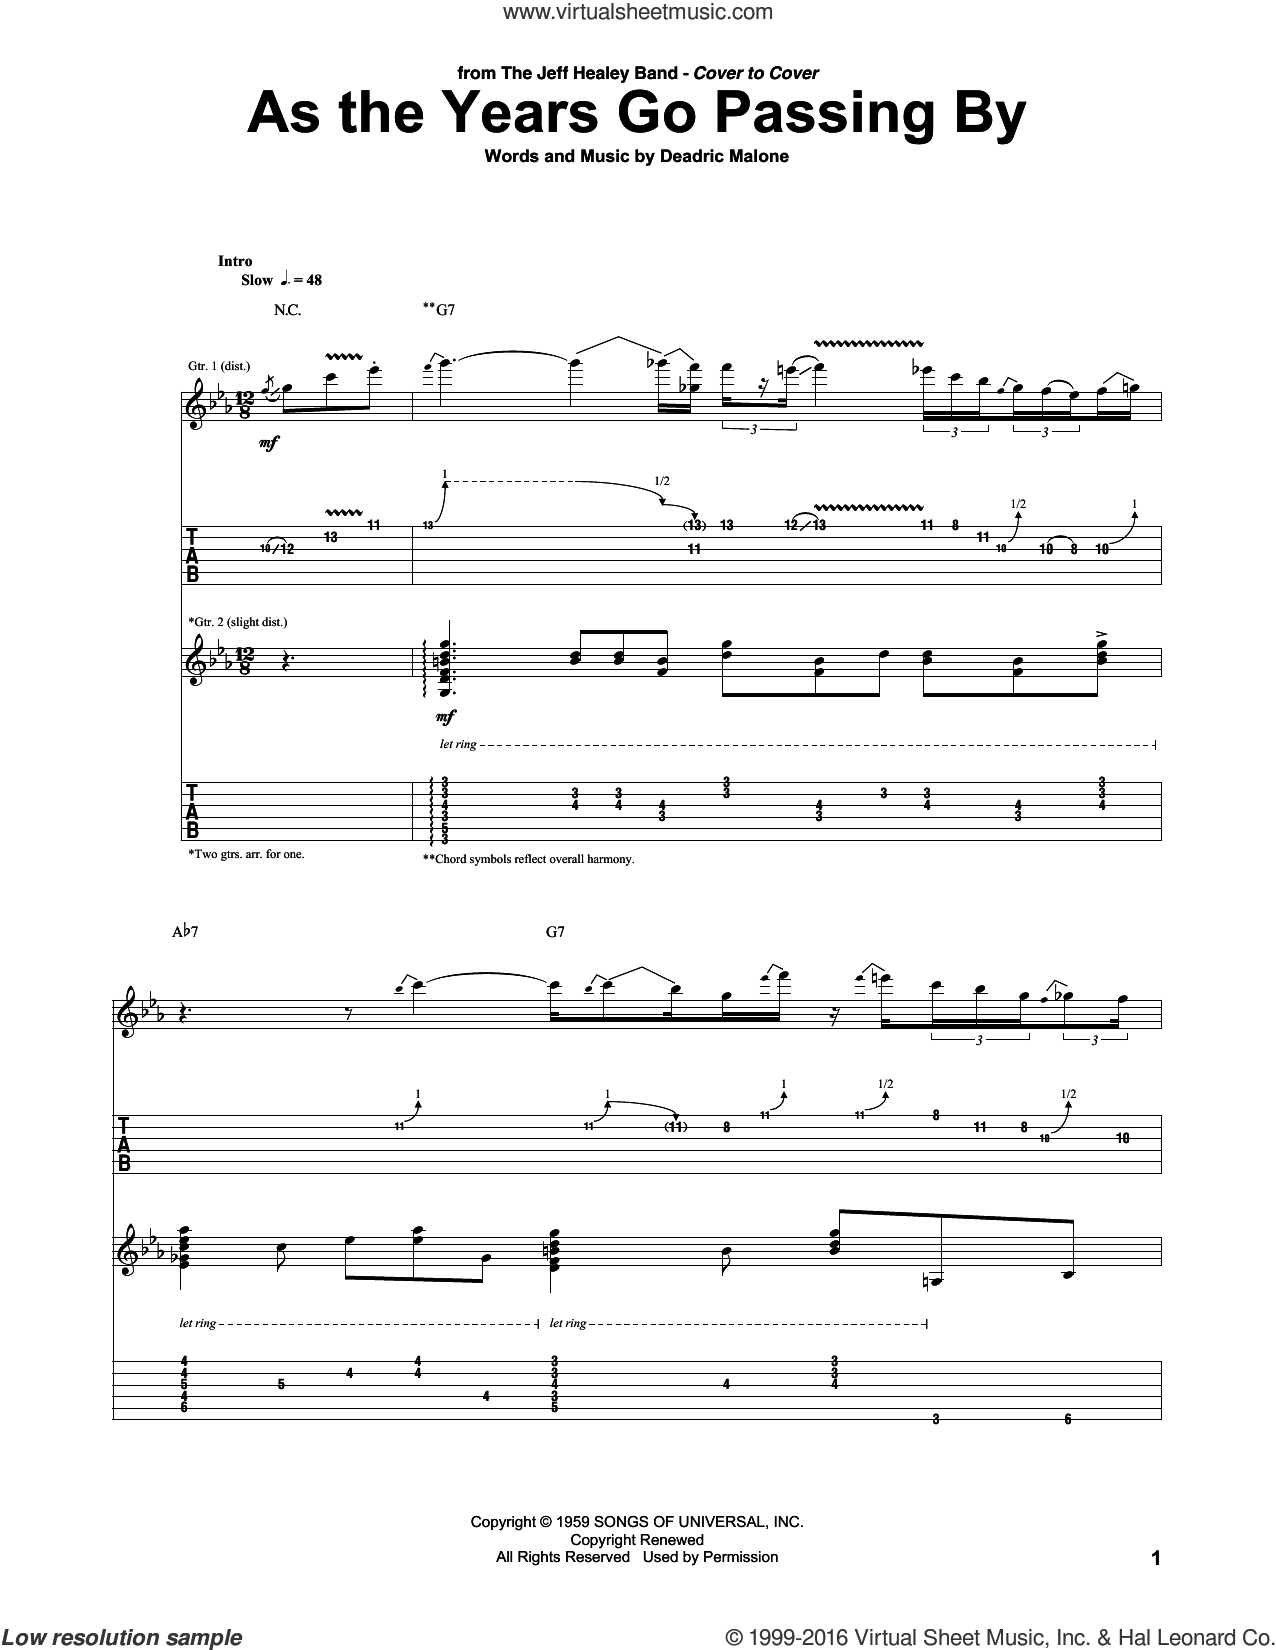 As The Years Go Passing By sheet music for guitar (tablature) by Deadric Malone and Jeff Healey Band, intermediate skill level